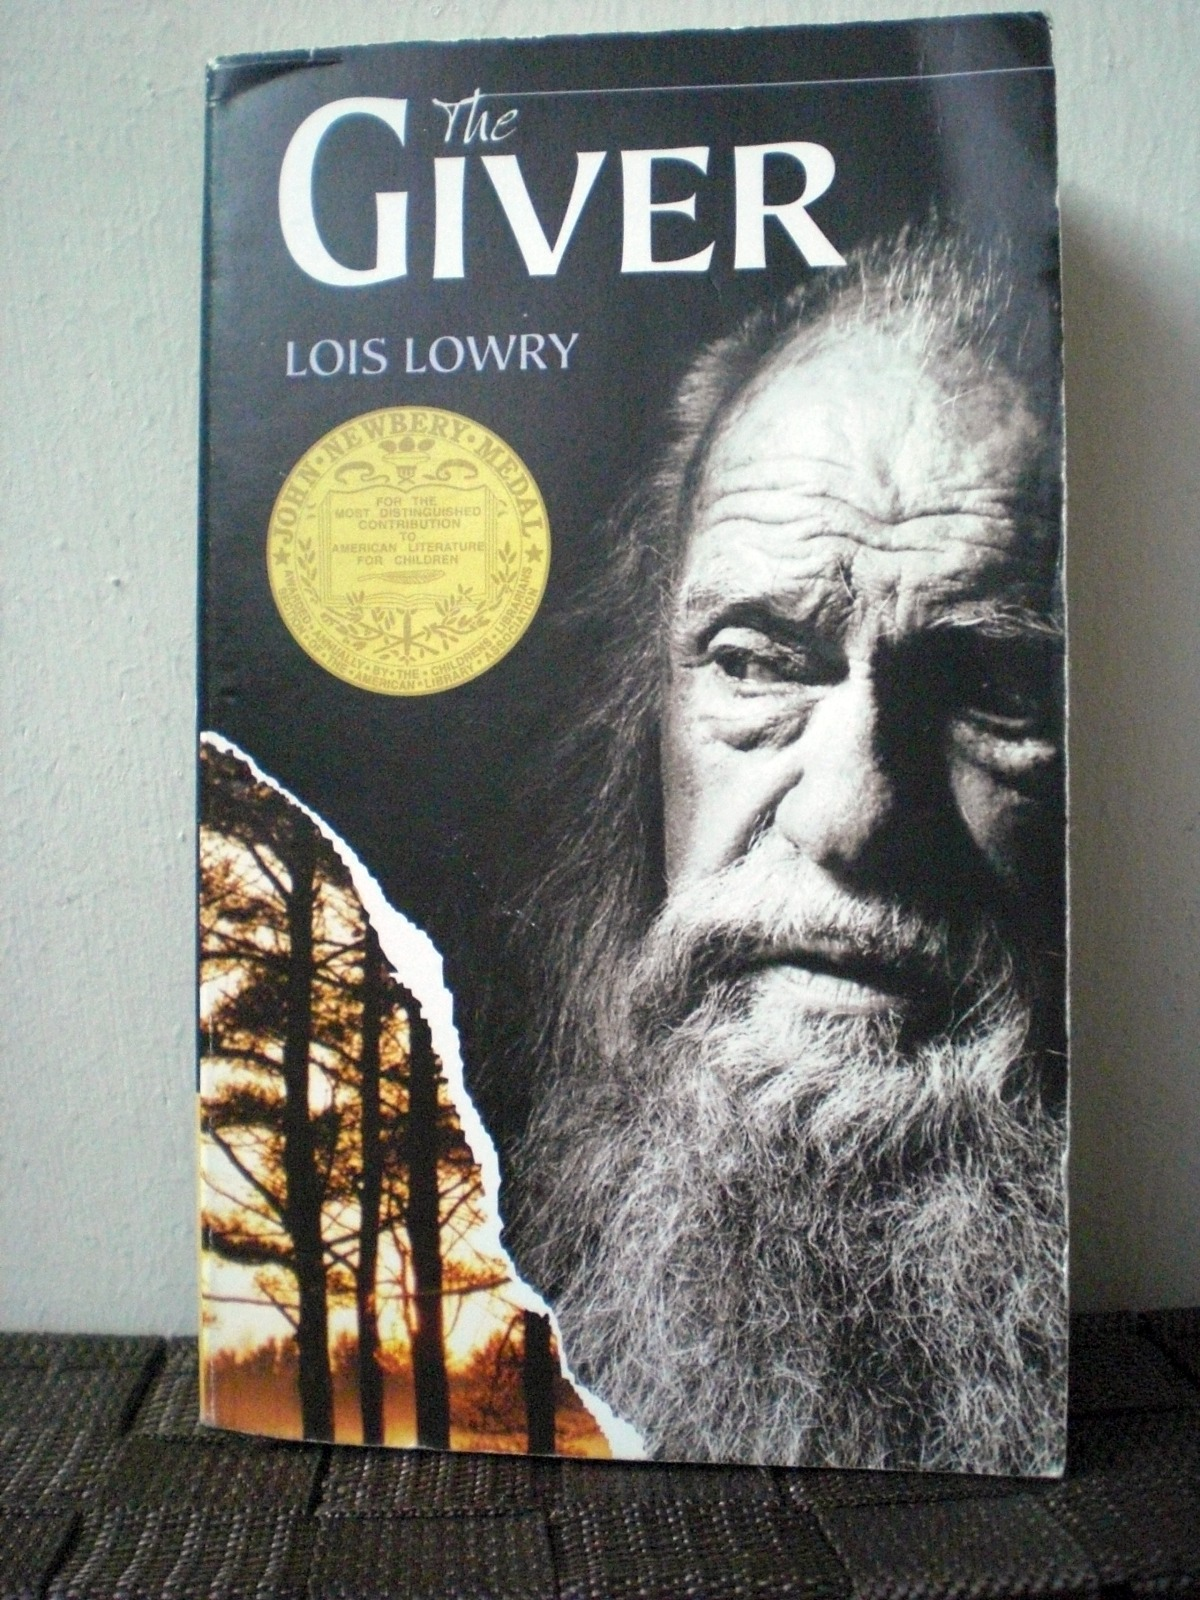 giver essay lois lowry Jonathan williams-estevez mrs kimball english 8-6 12-15-13 the giver by lois lowry the giver by lois lowry is a science fiction novel (sci-fi means it's.